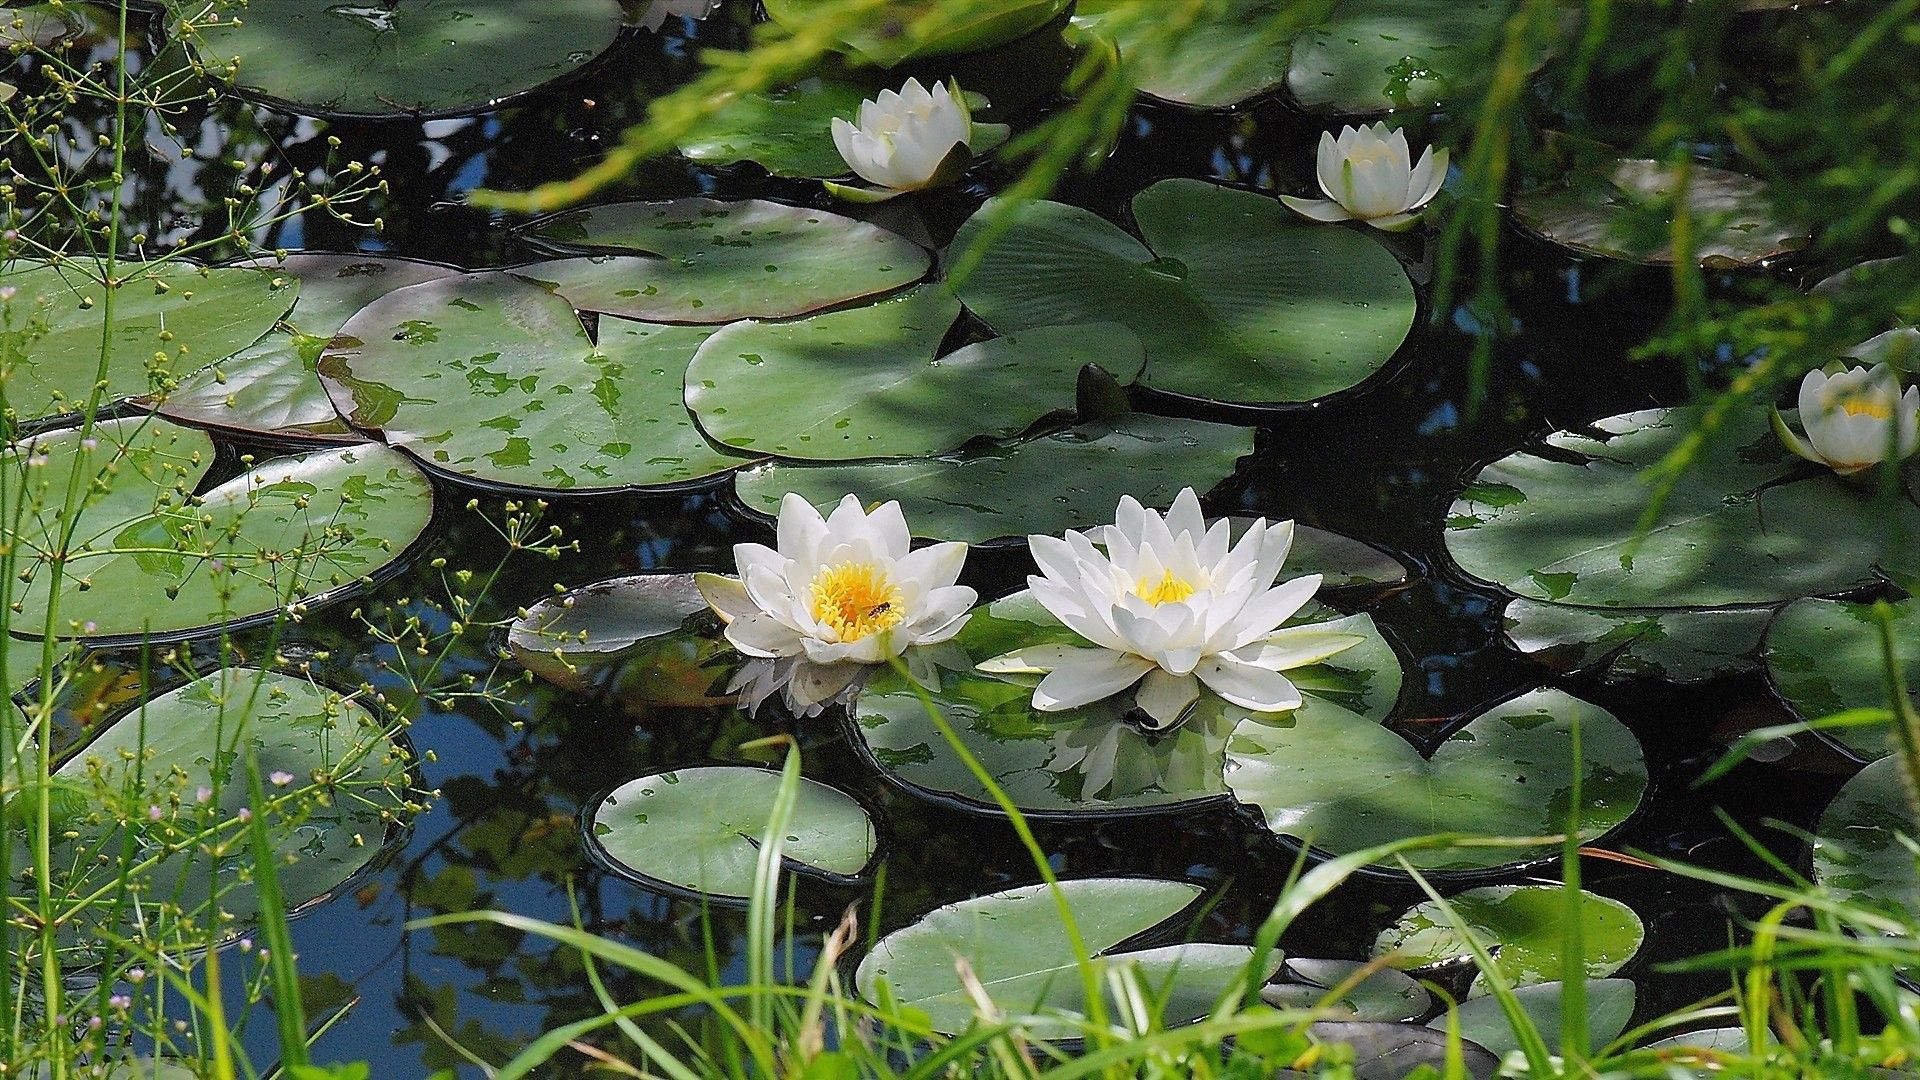 Water Lily Wallpapers Hd Download Water Lilies Art Water Lily Pond Water Lilies Wallpaper lily white flower pond leaves